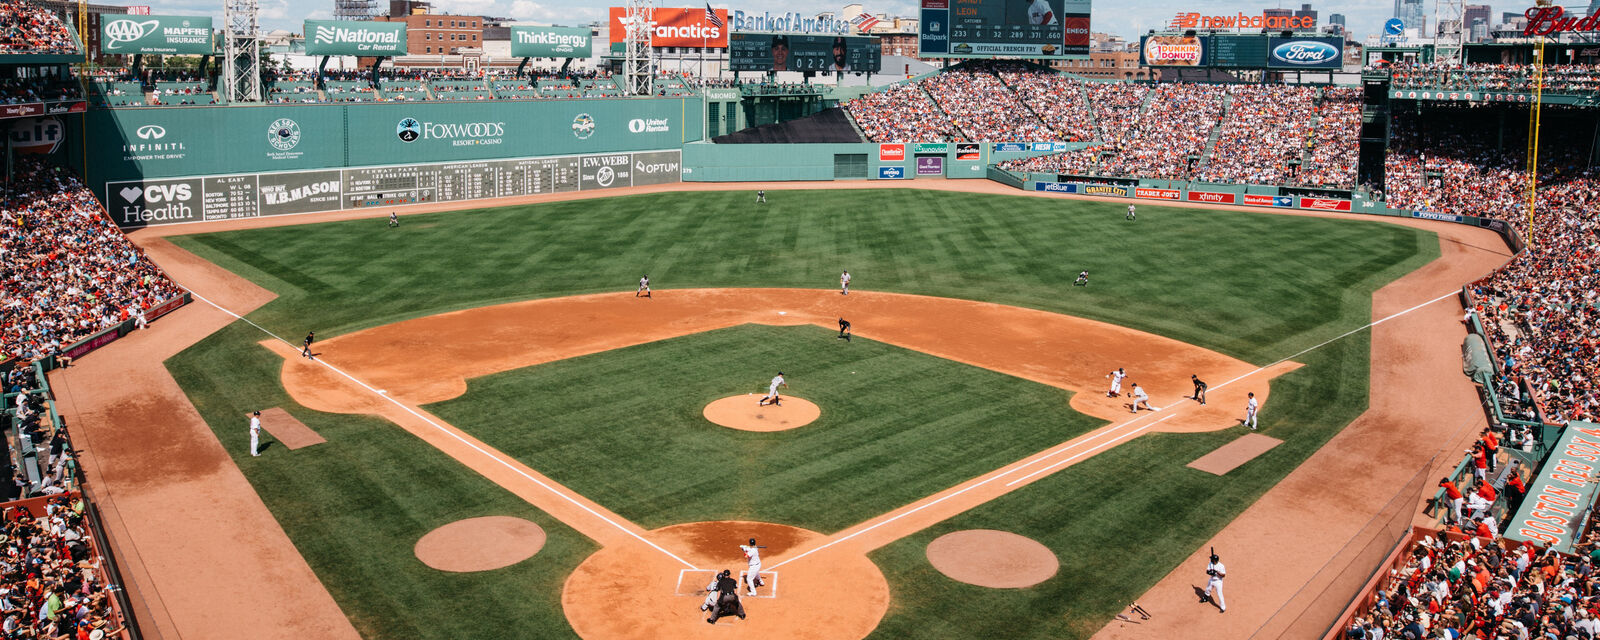 Seattle Mariners at Boston Red Sox